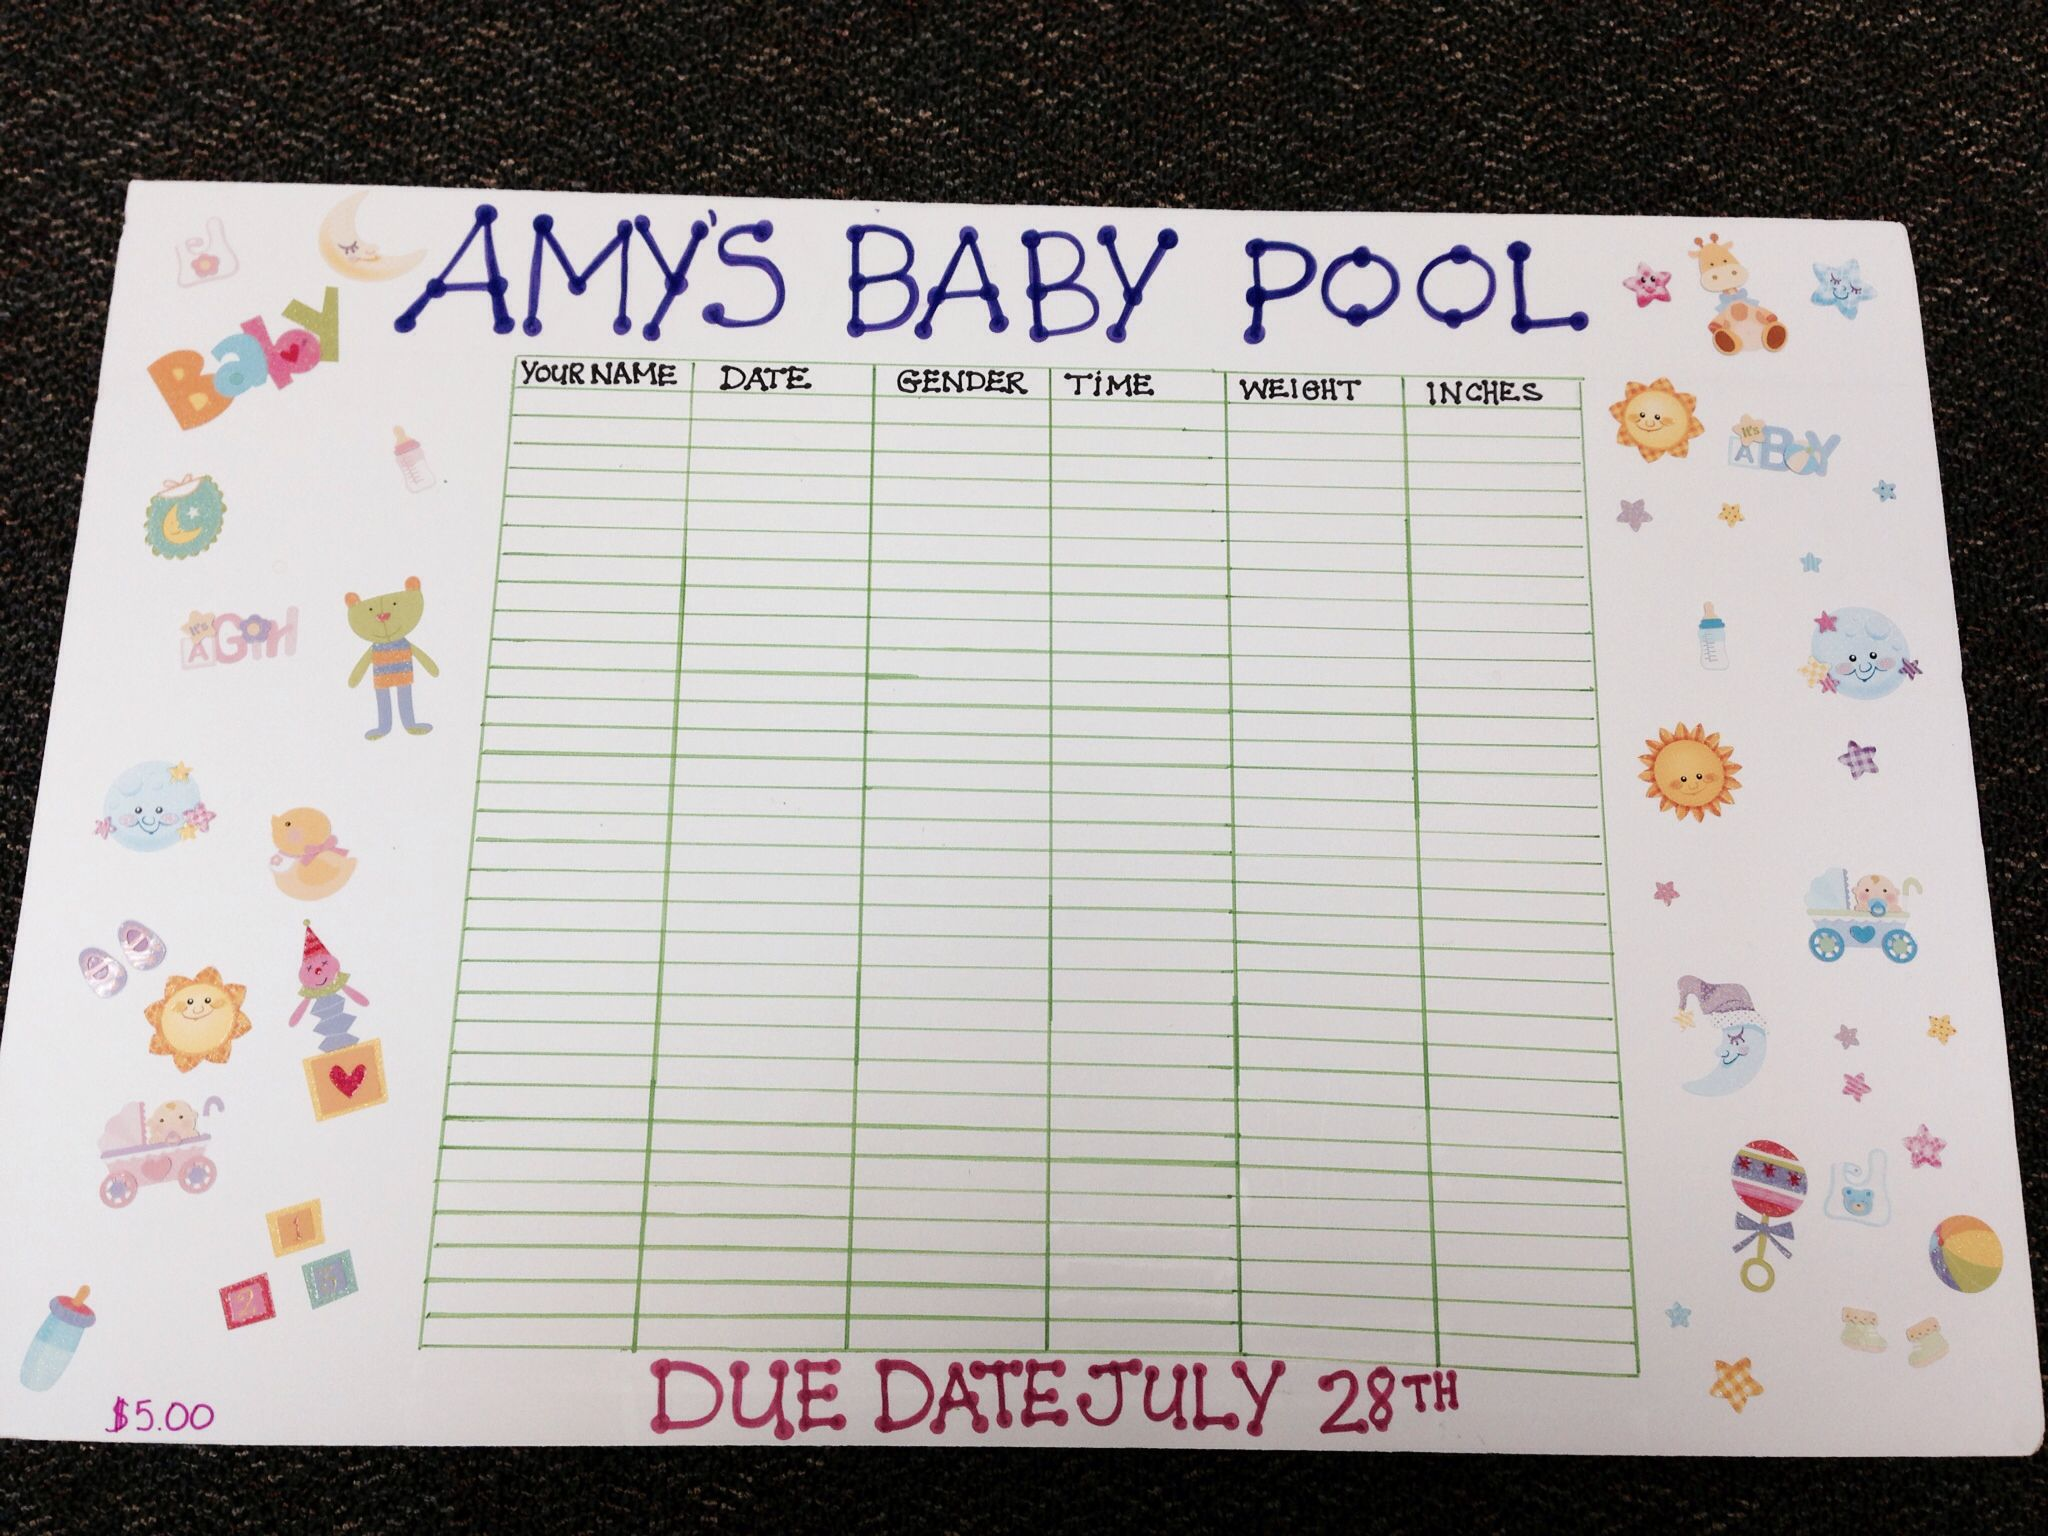 Examples Of Office Baby Pool Template Excel Within Office Baby Pool Template Excel Download For Free